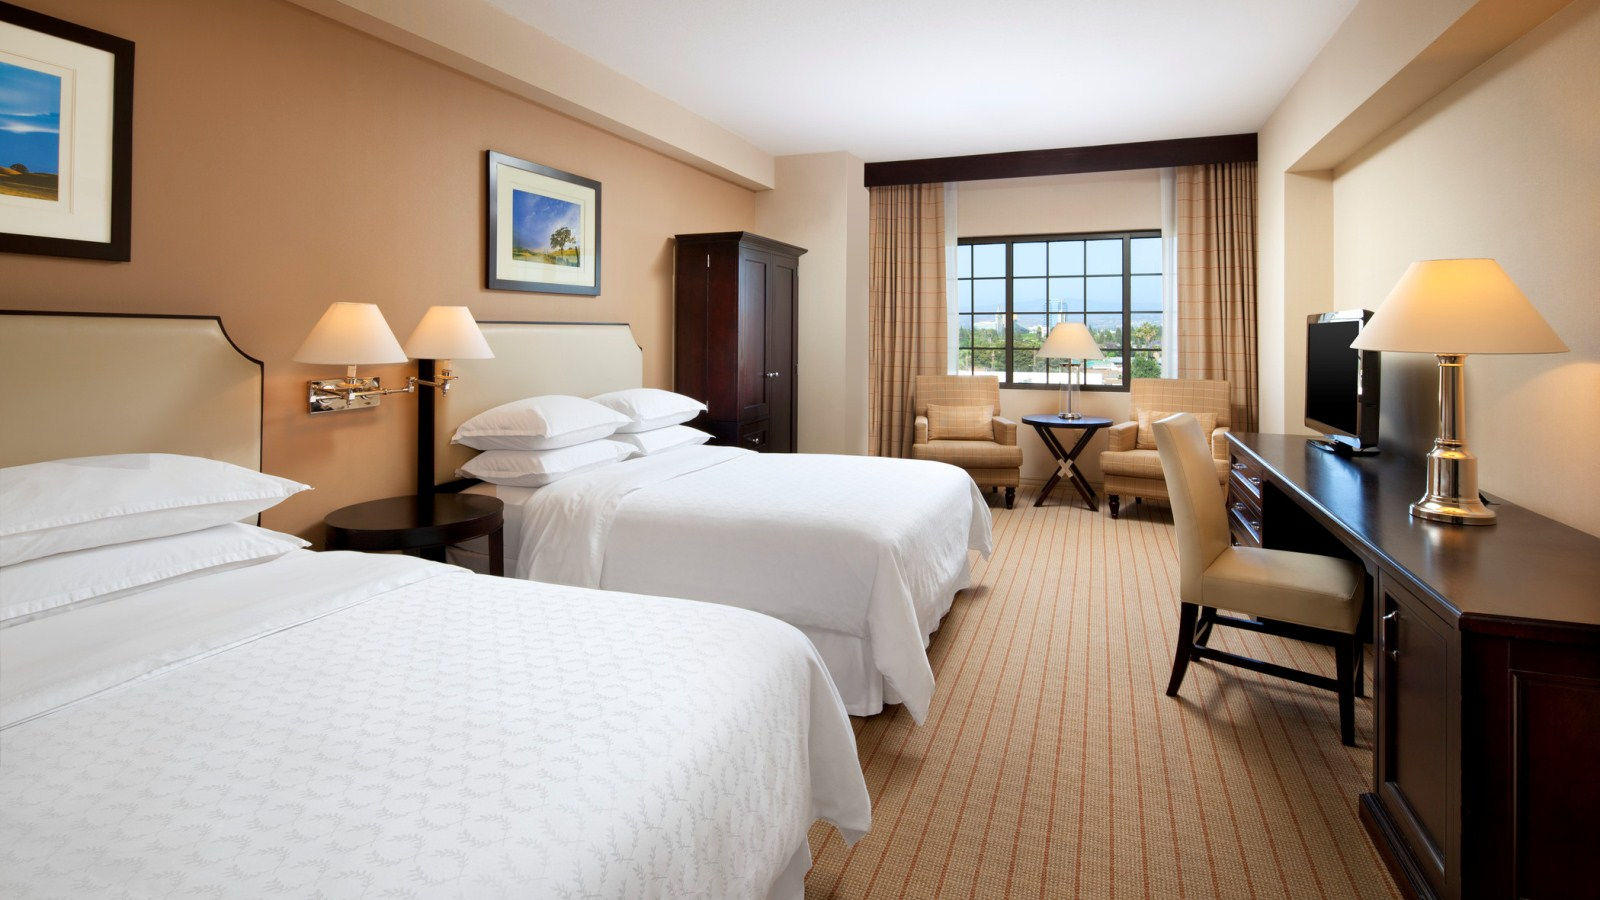 Sheraton Garden Grove - Anaheim South Hotel - Traditional Room